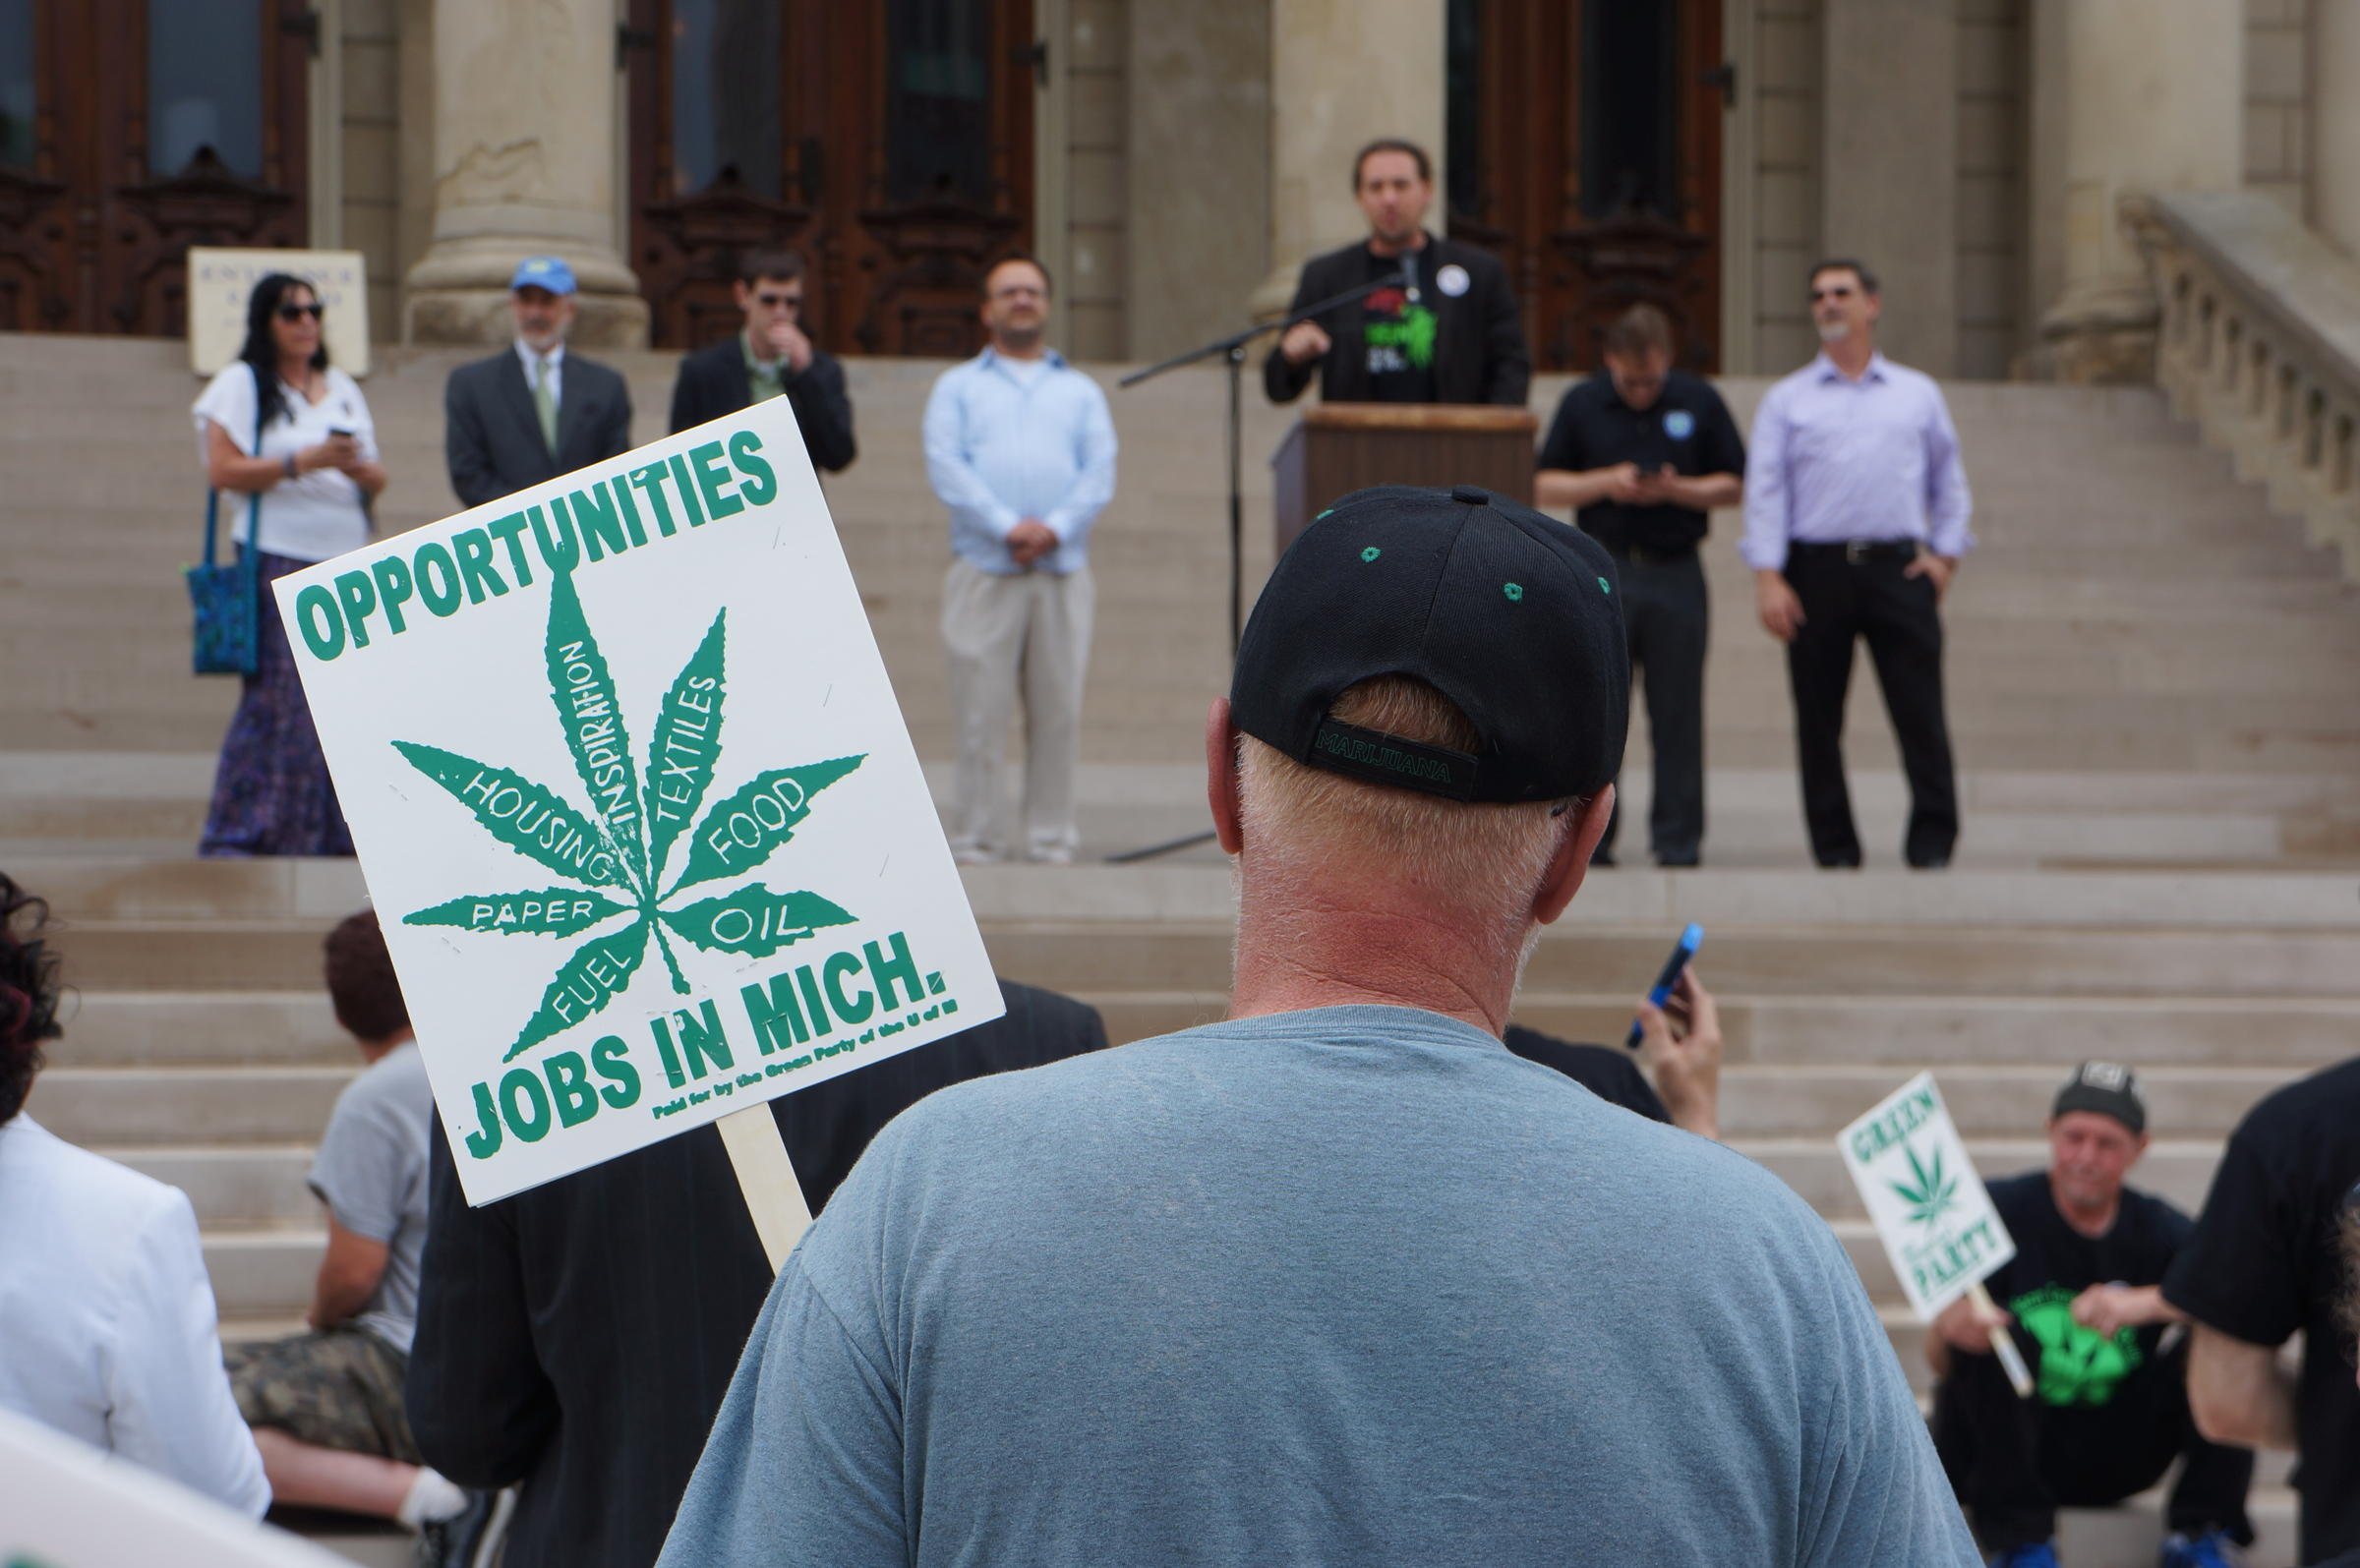 State To Let Medical Marijuana Dispensaries Stay Open During Licensure